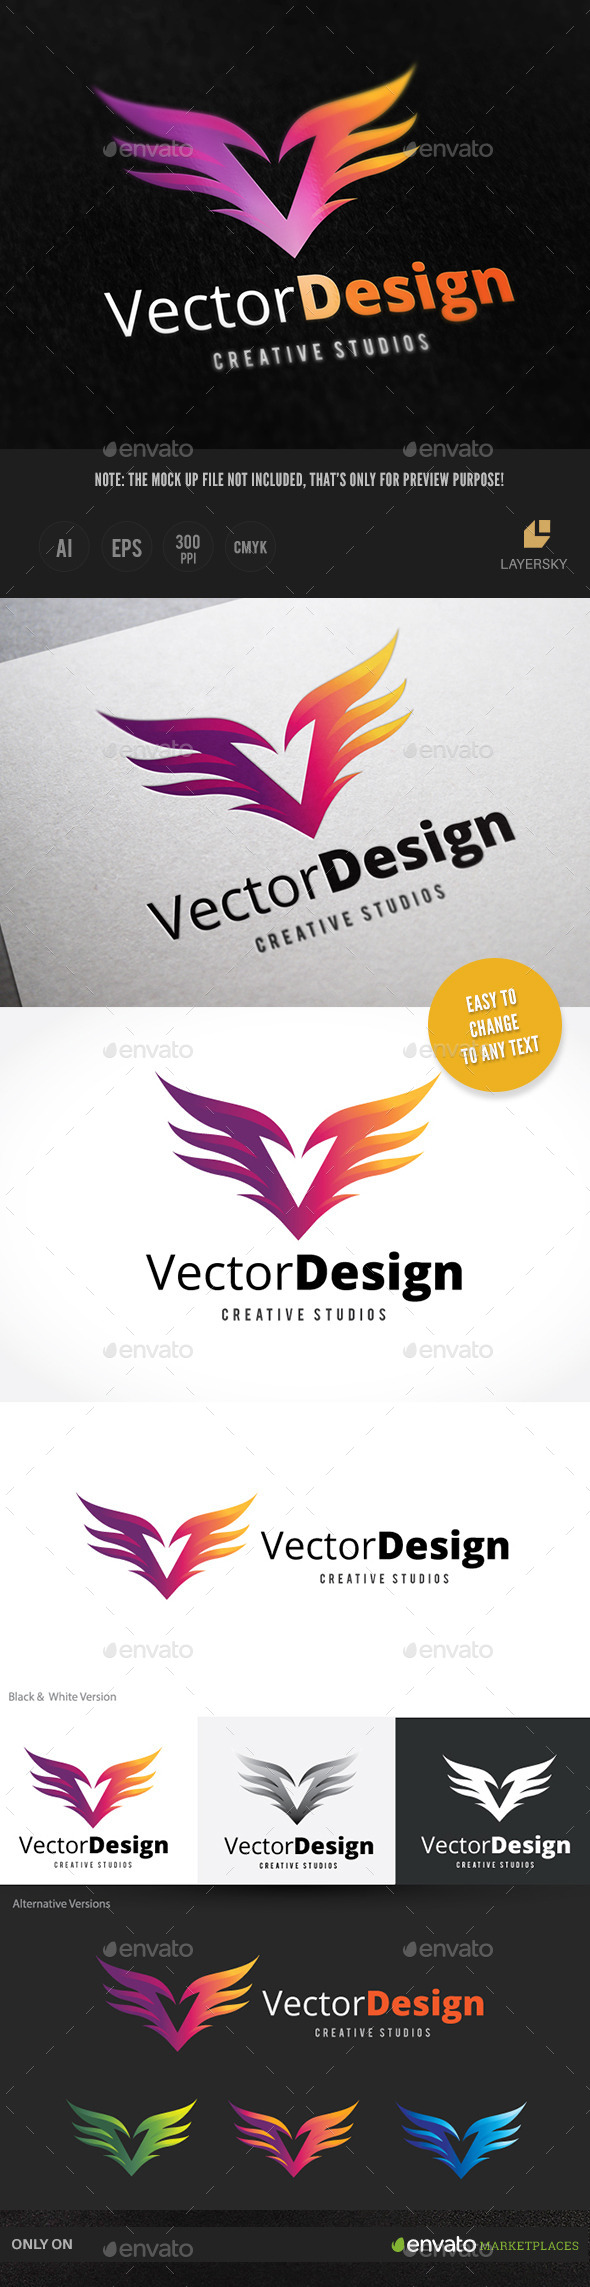 GraphicRiver Vector Design 10840748